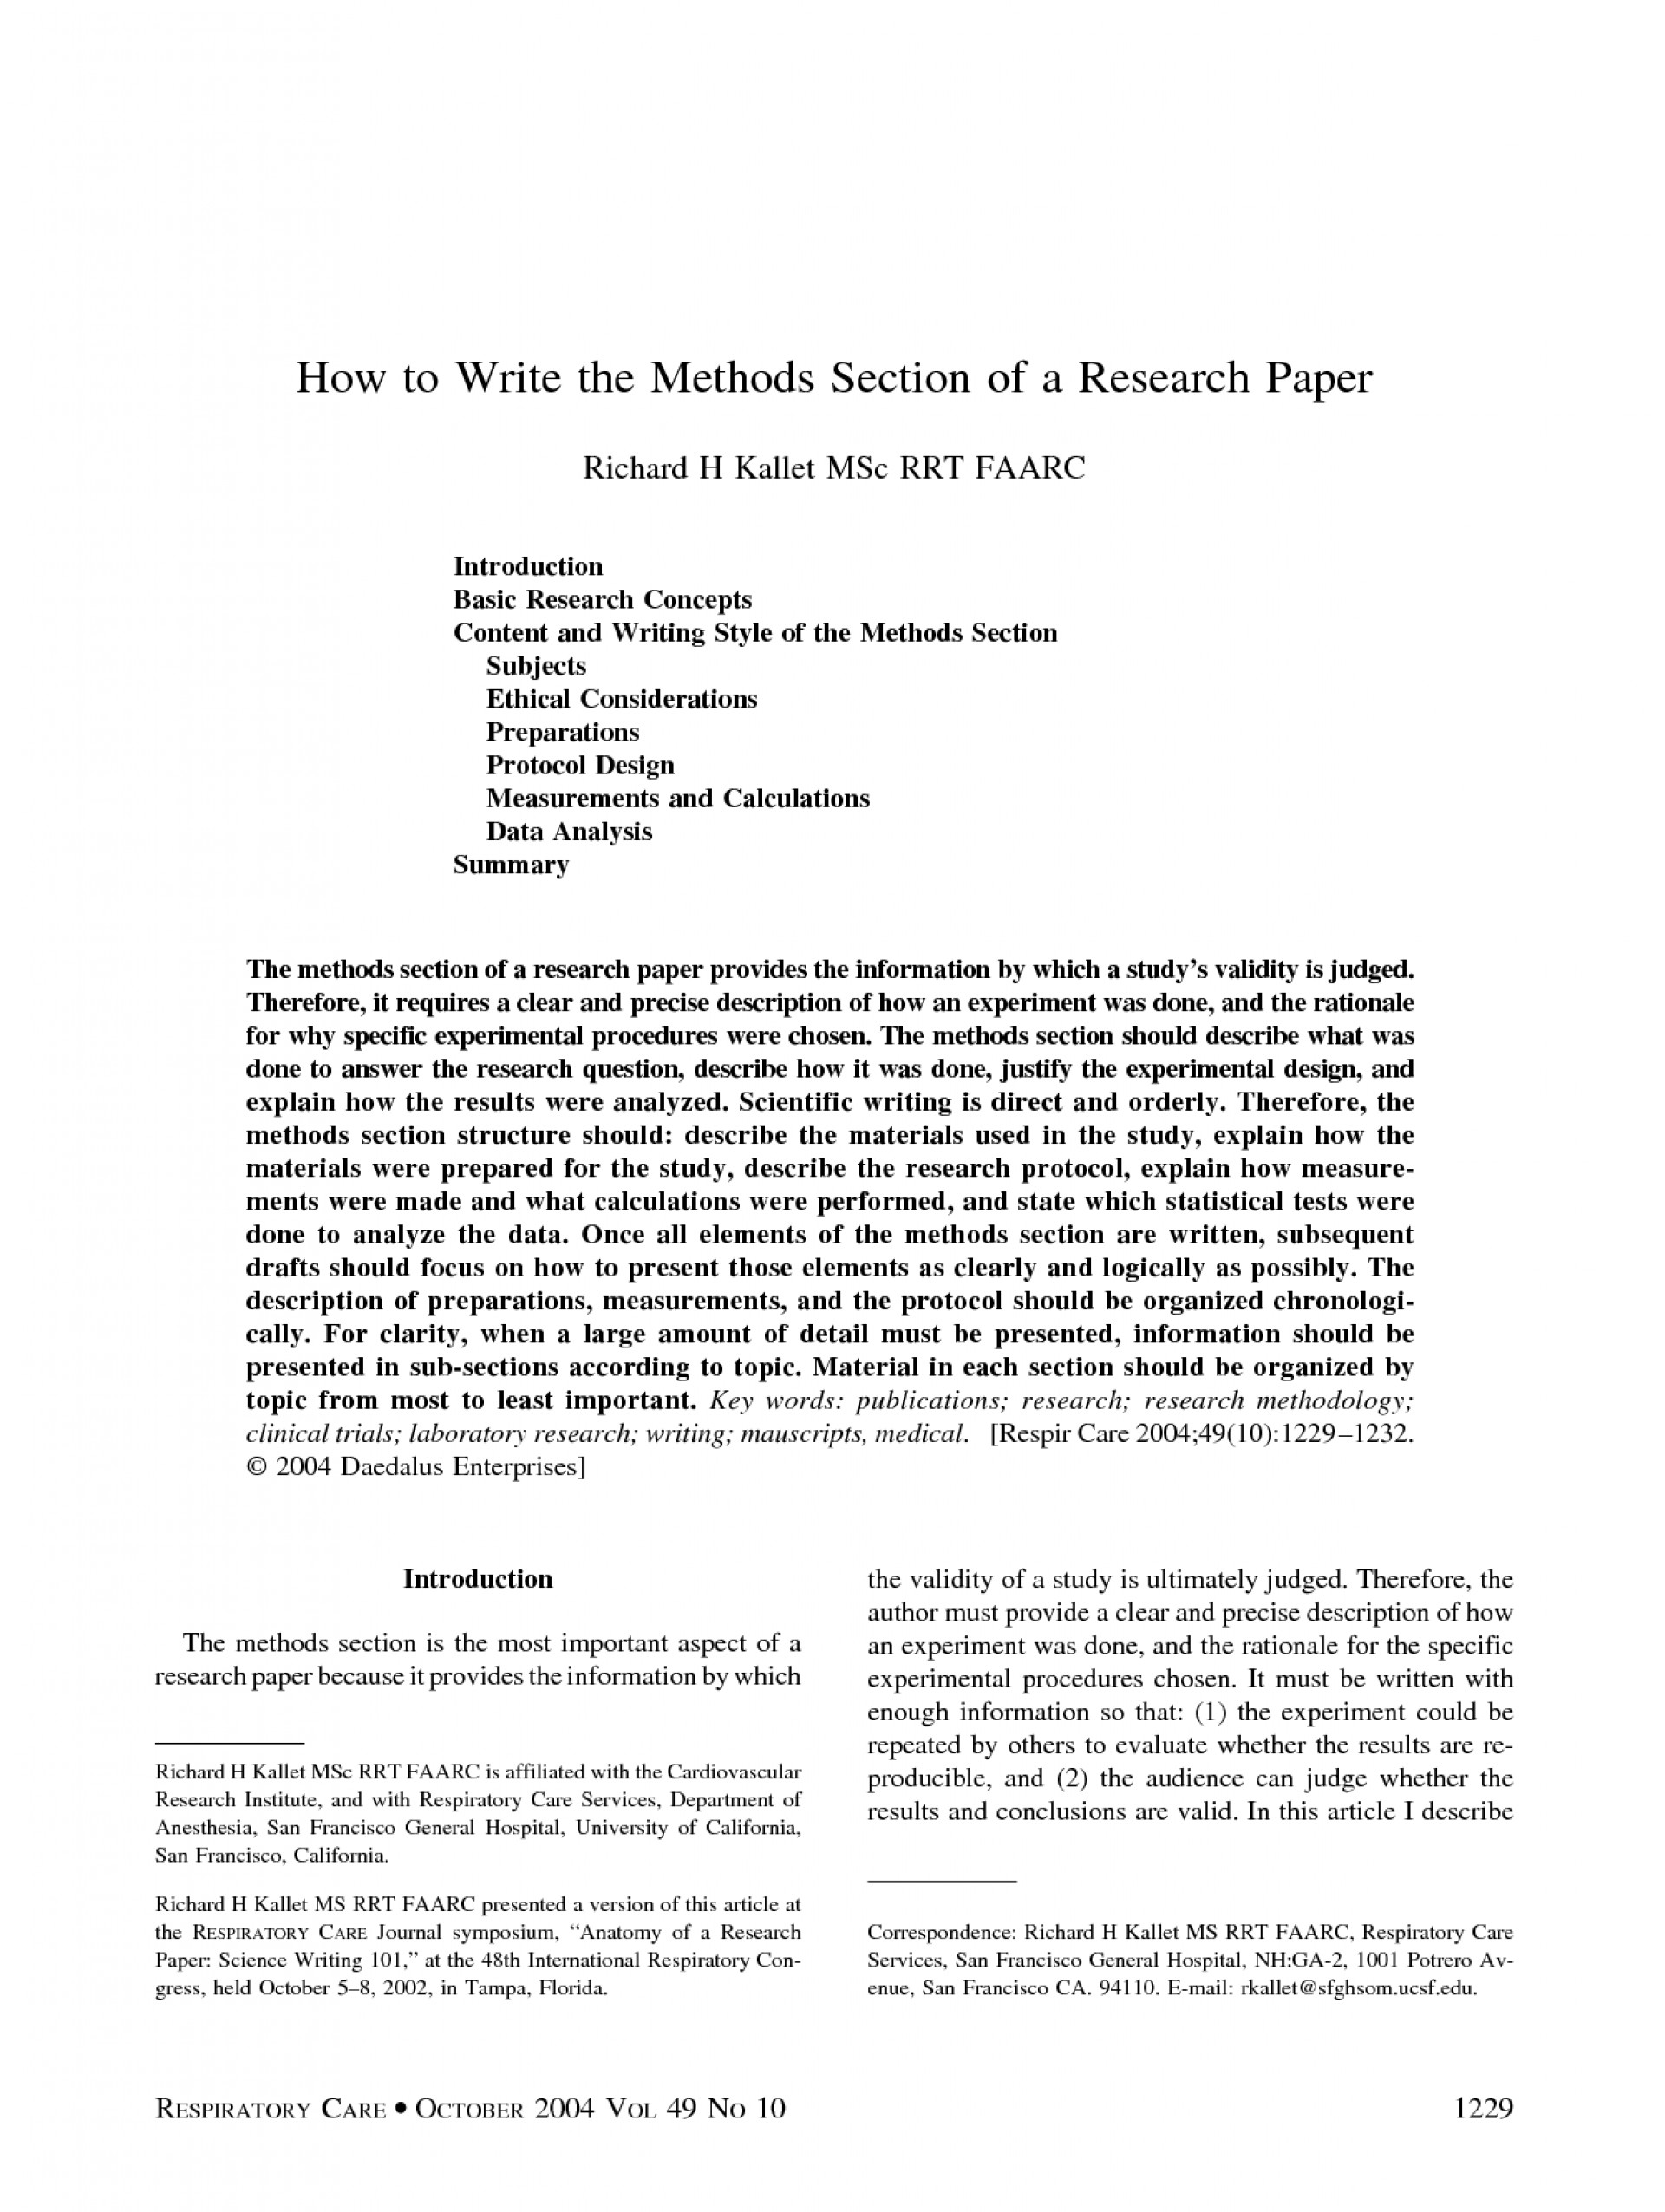 005 Methodology In Research Paper Incredible About Bullying Teenage Pregnancy Example Of Engineering 1920